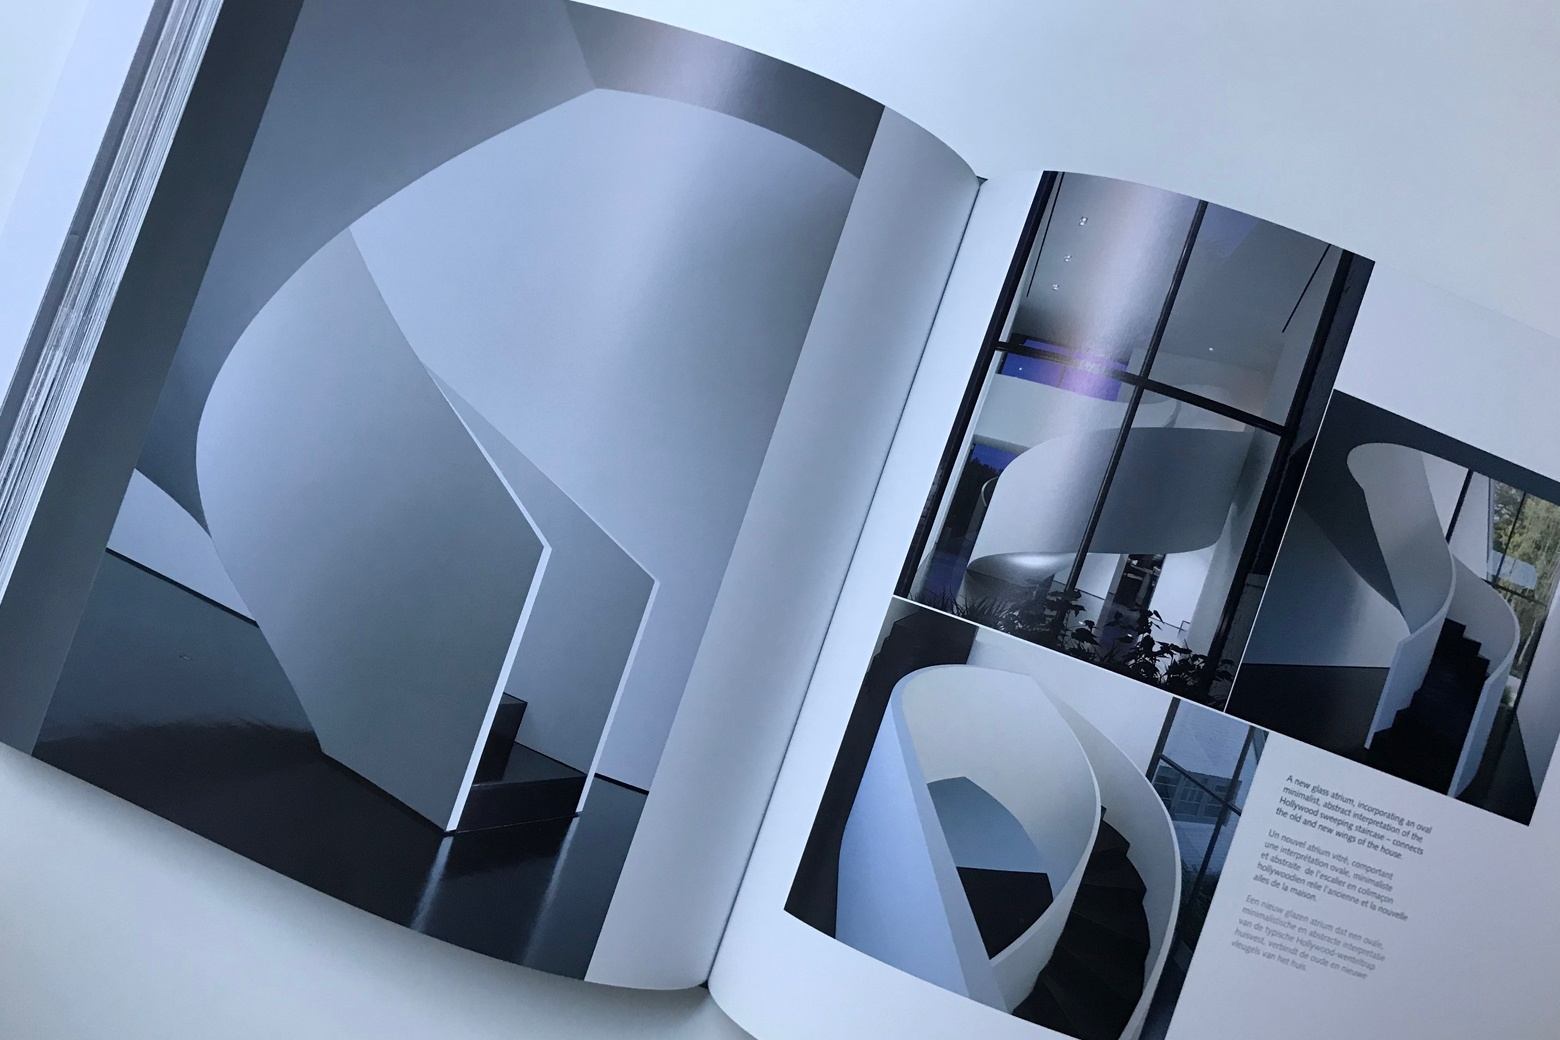 Contemporary Architecture U0026 Interiors. Design Anthology. Dwell